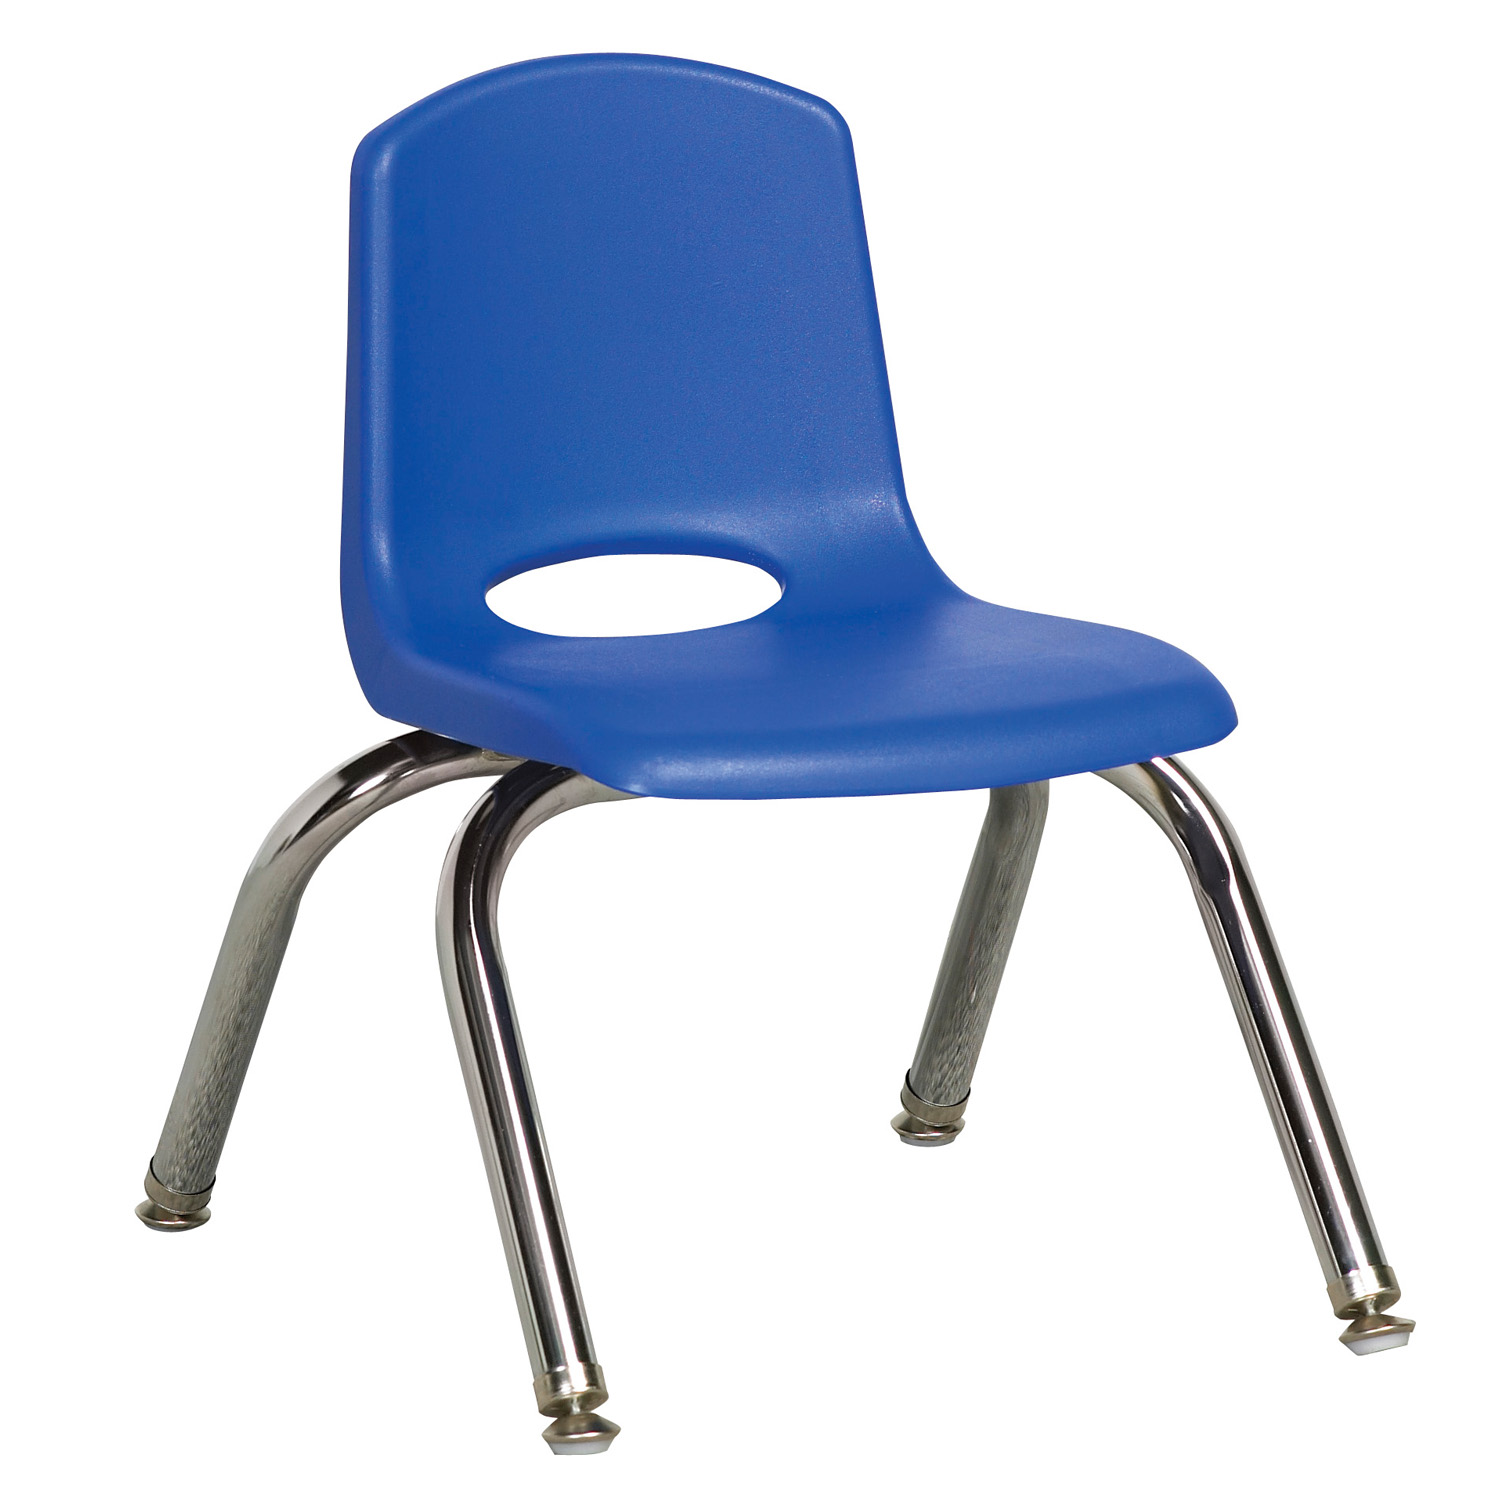 ECR4Kids 10 034 Kids Room Preschool Comfortable Stack Chair W Chrome Legs EBay